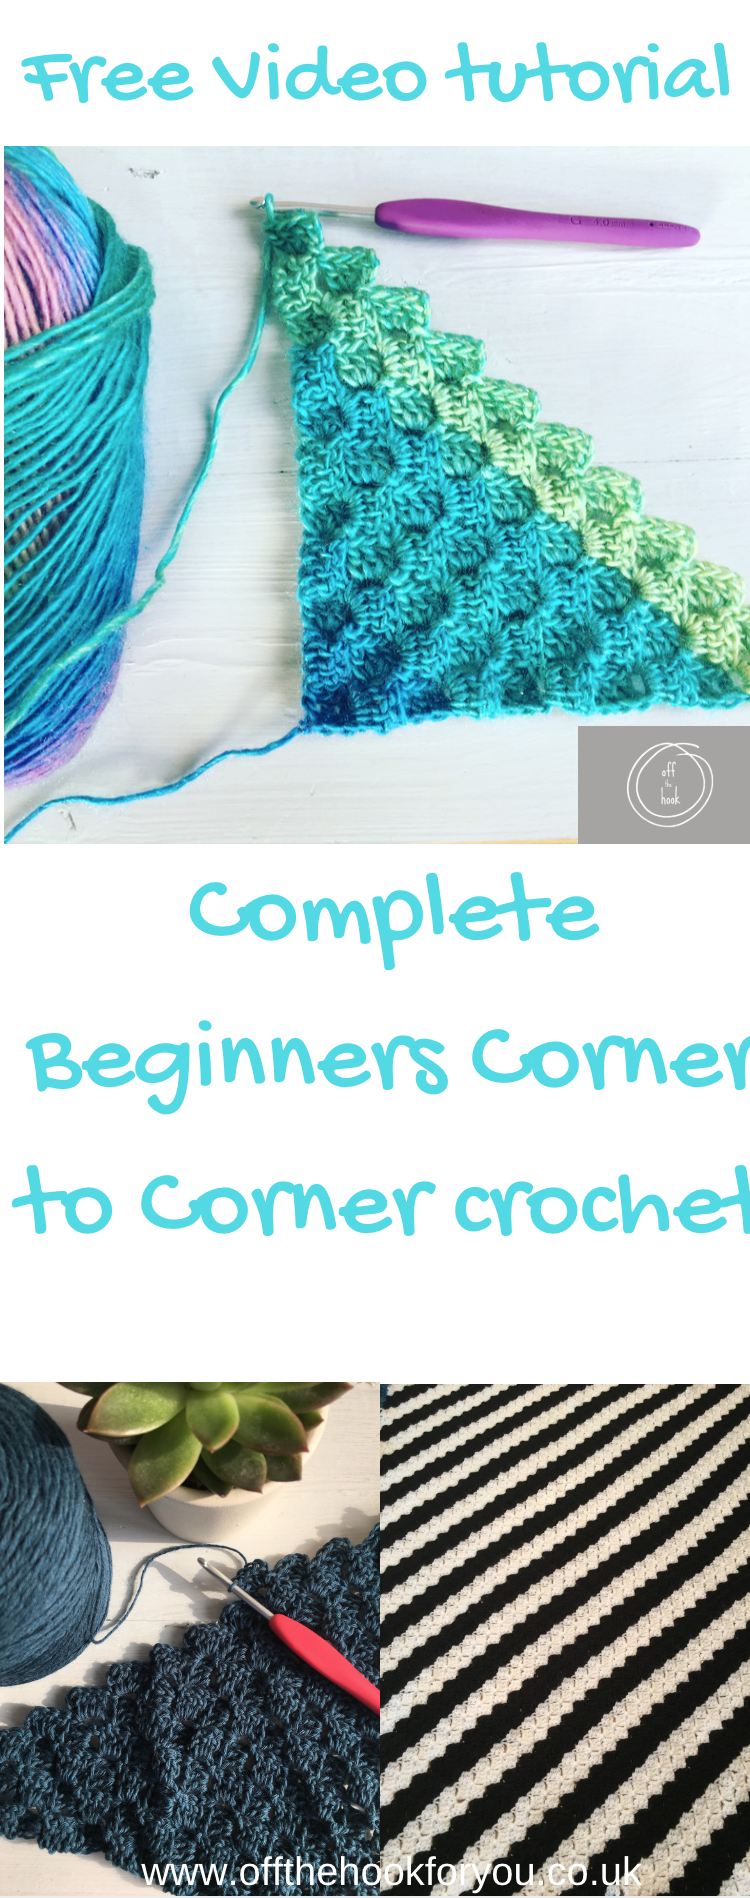 A quick post on why I love C2C, and a little video showing you how to do it - for complete beginners. #crochettutorial